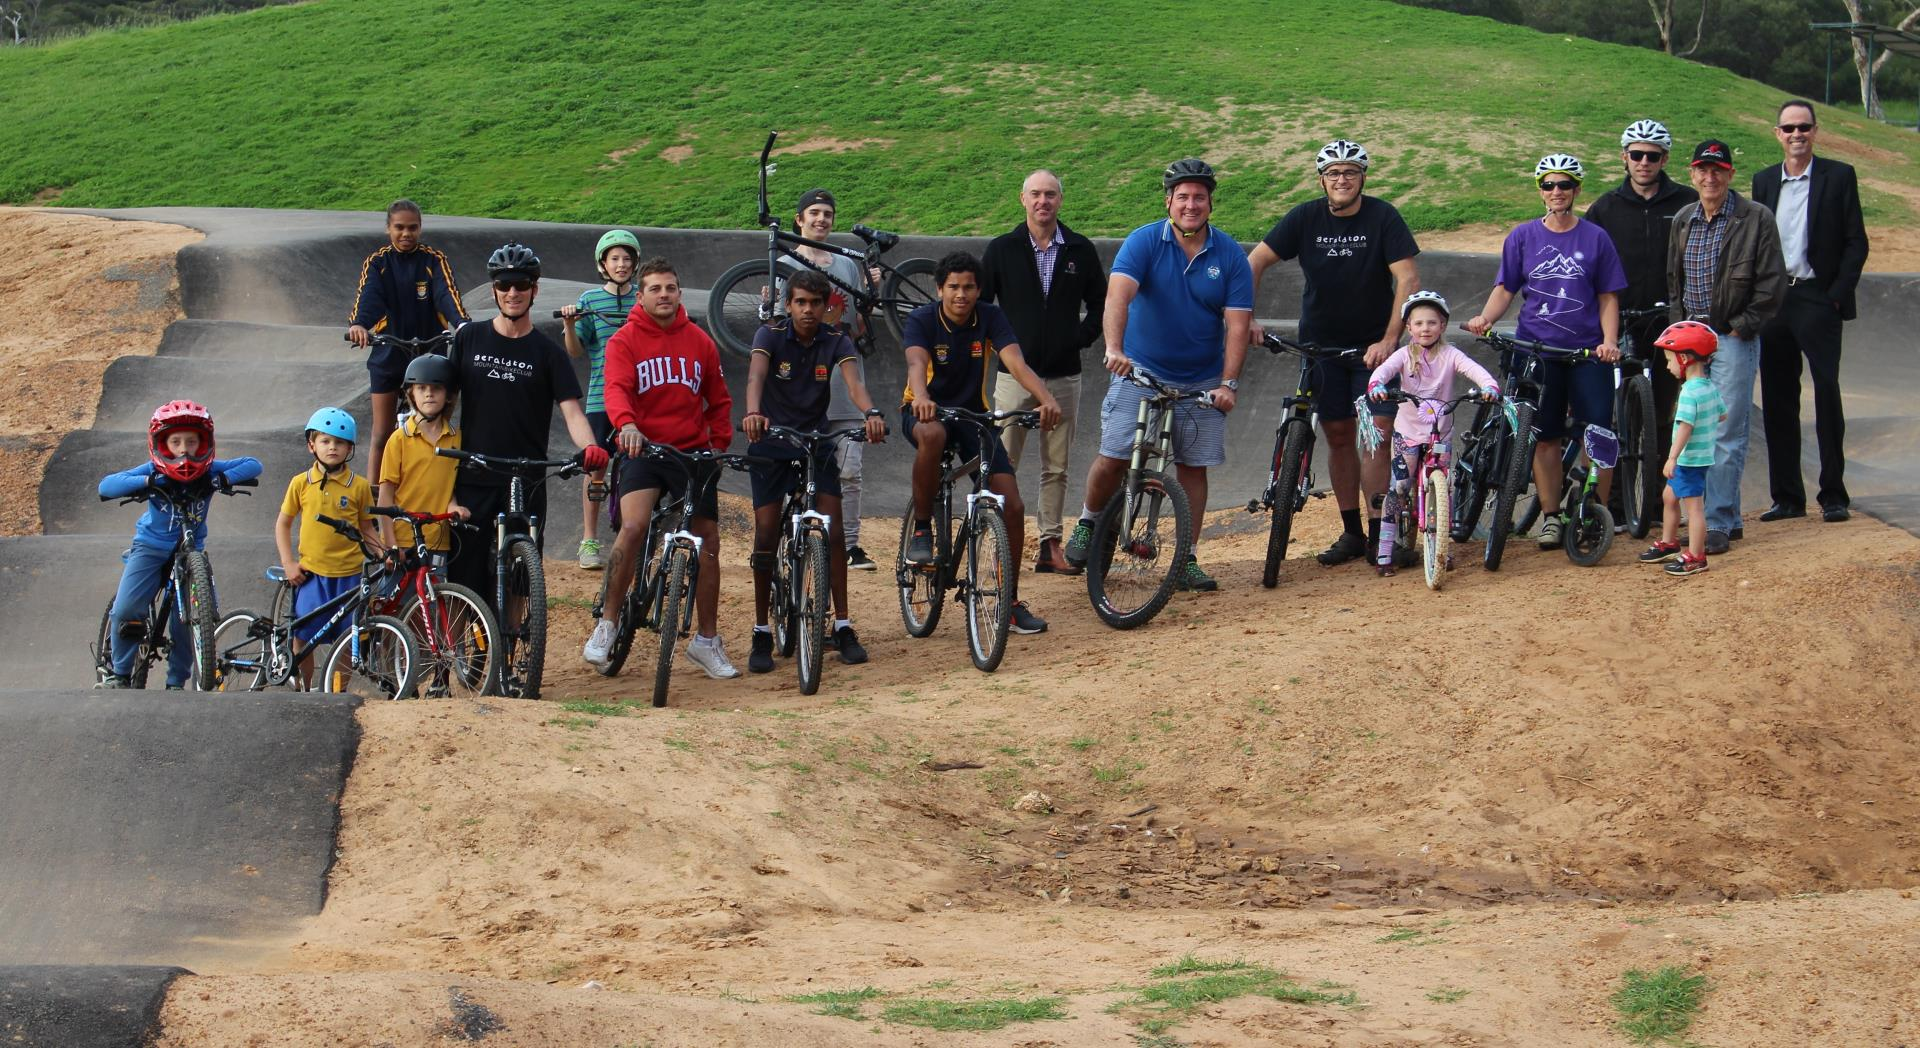 New mountain bike facilities impress locals and tourists